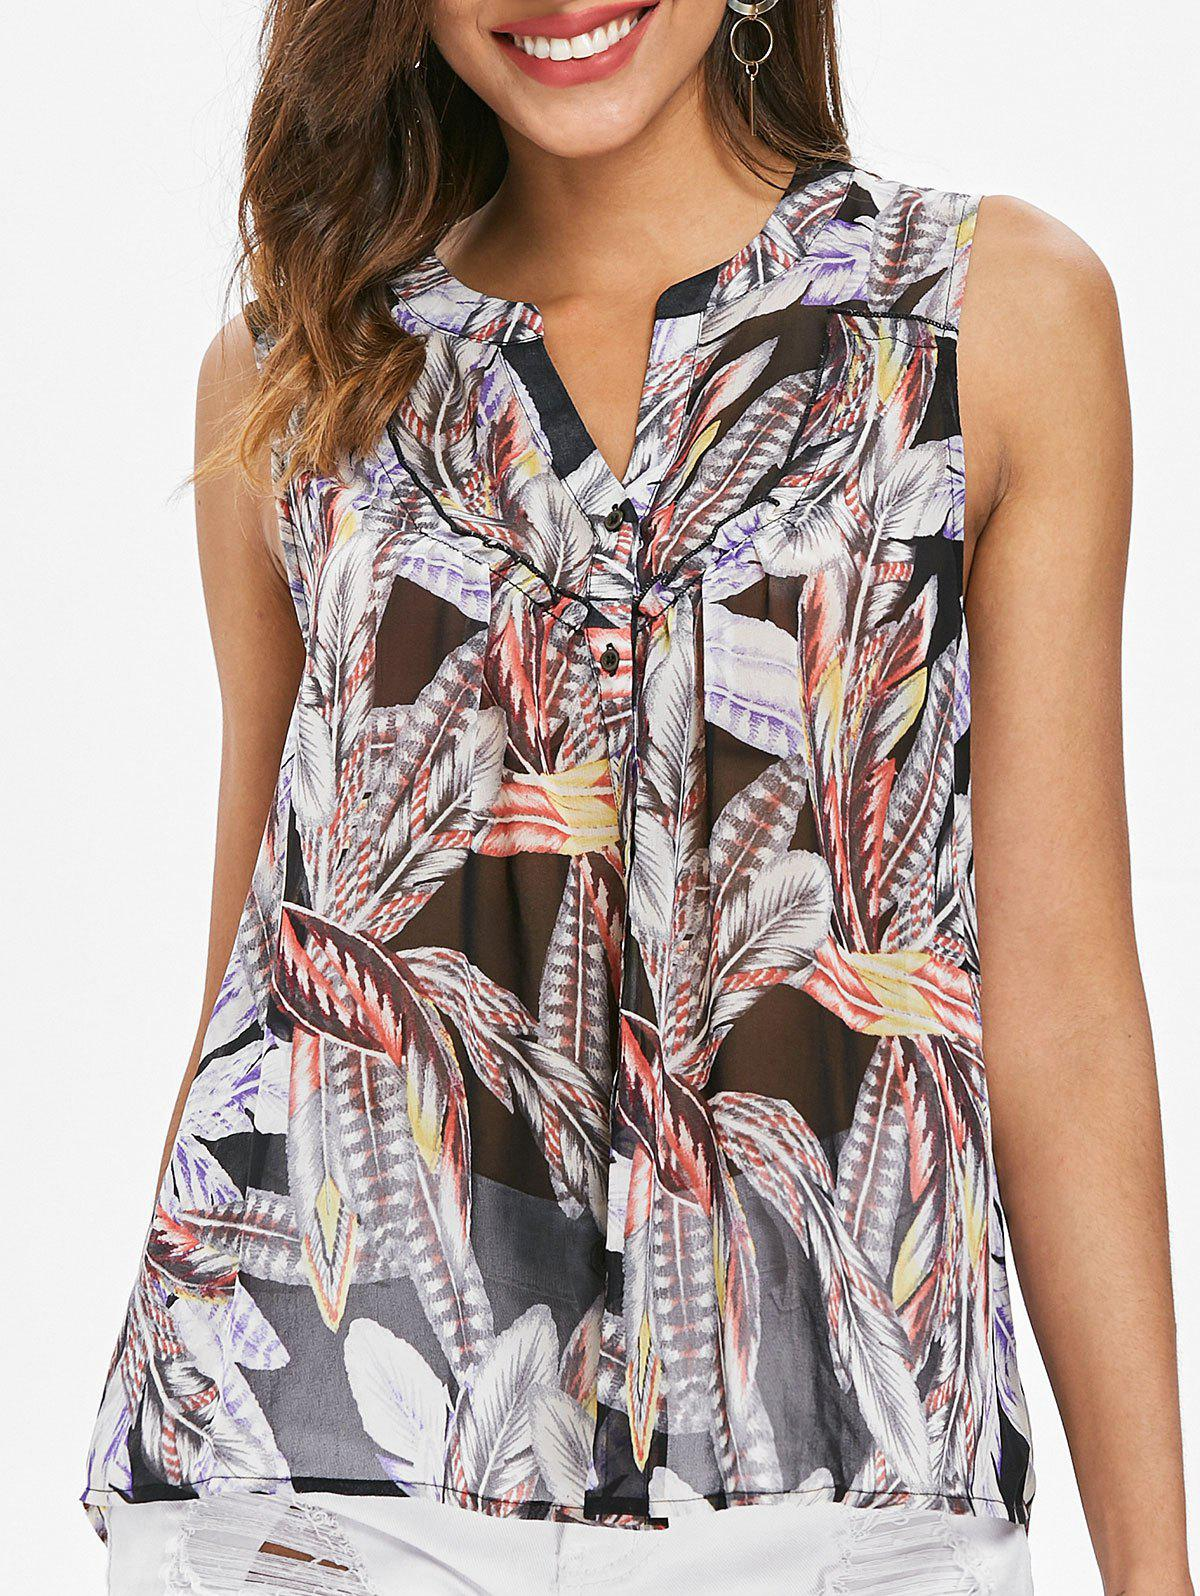 Feather Print Button Up Tank Top - multicolor XL